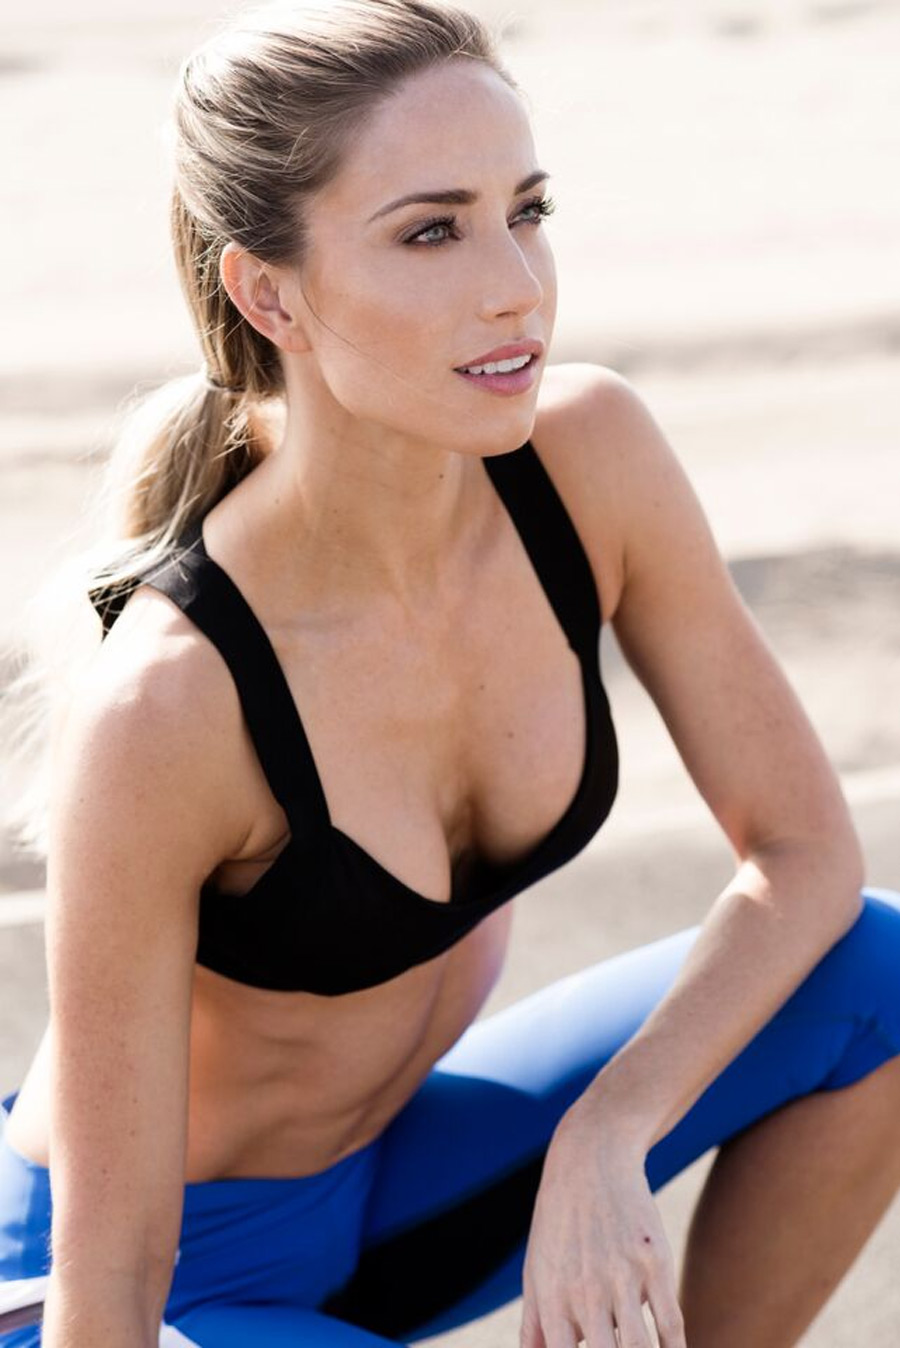 Astrid Swan: Exceptionally Talented and Stunningly Beautiful Fitness Expert and Model Reveals her Fitness, Diet and Beauty Secrets